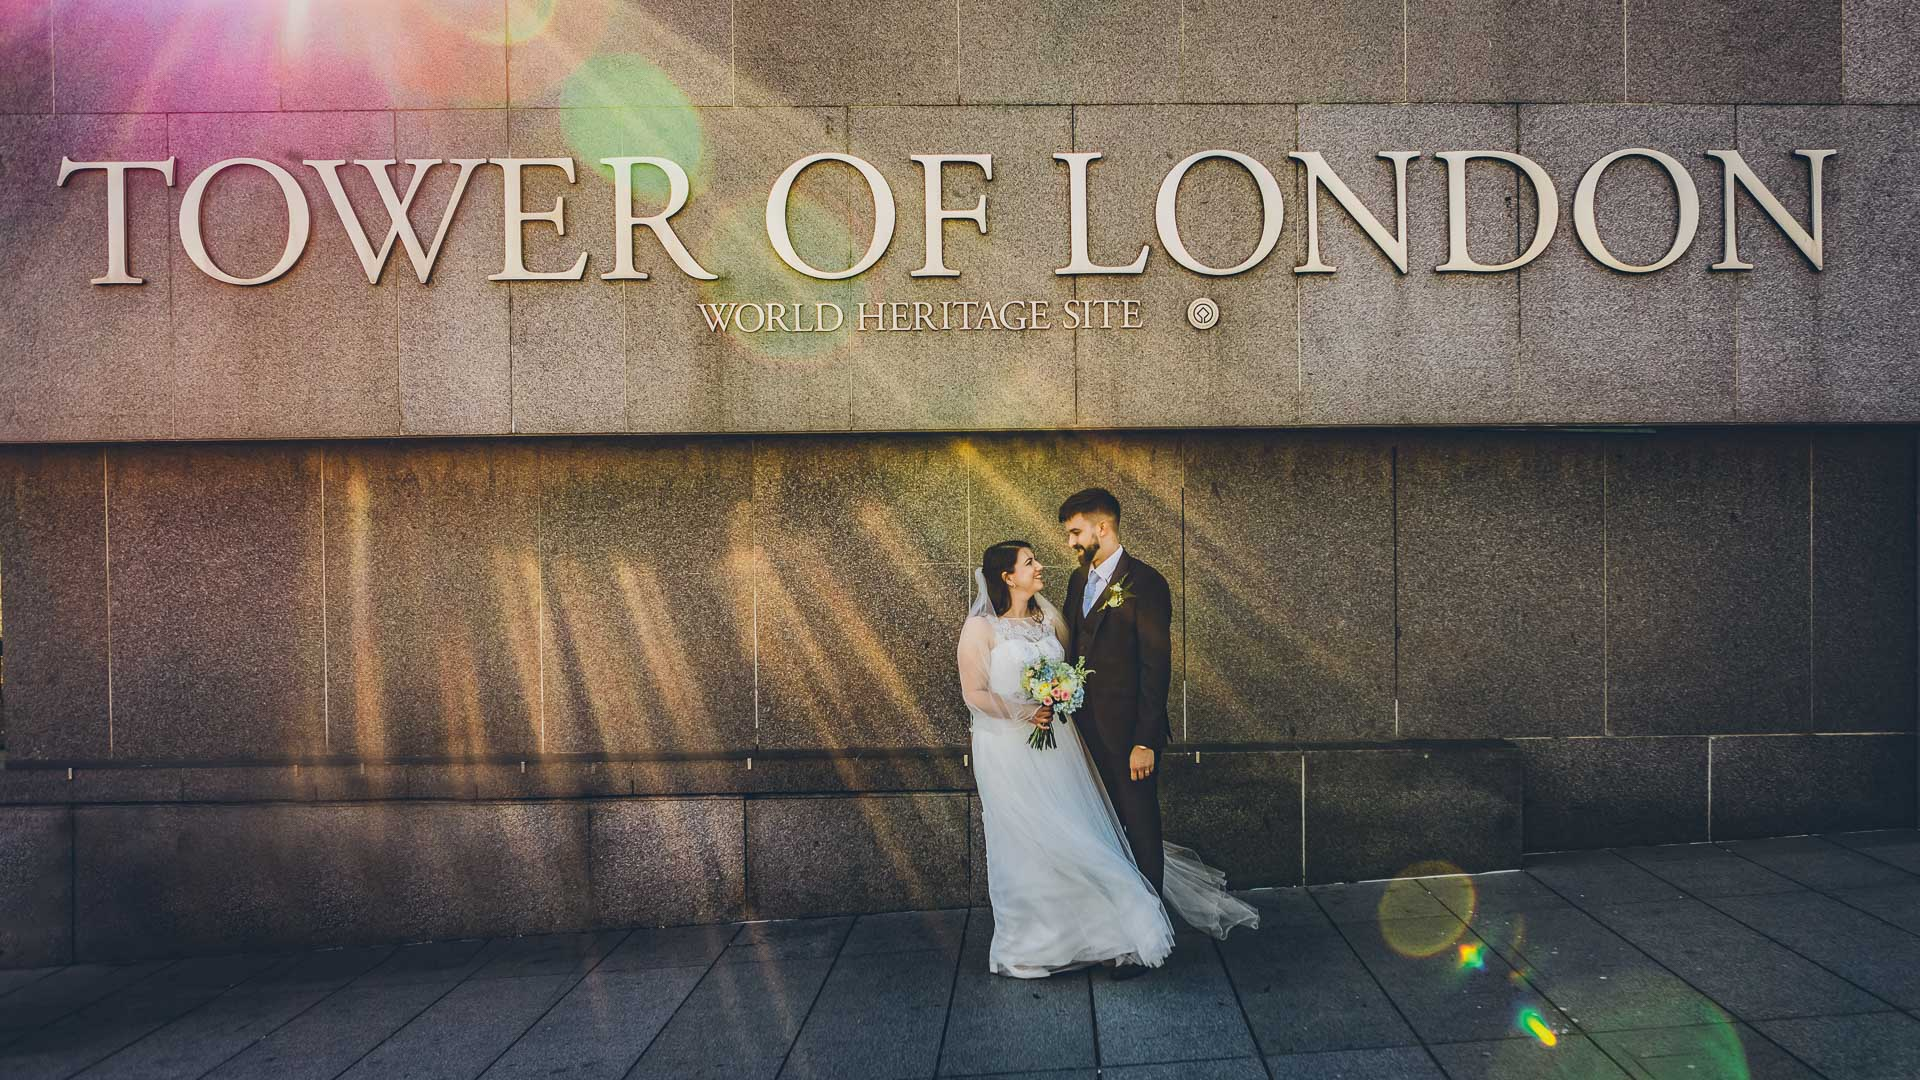 Tower of London wedding